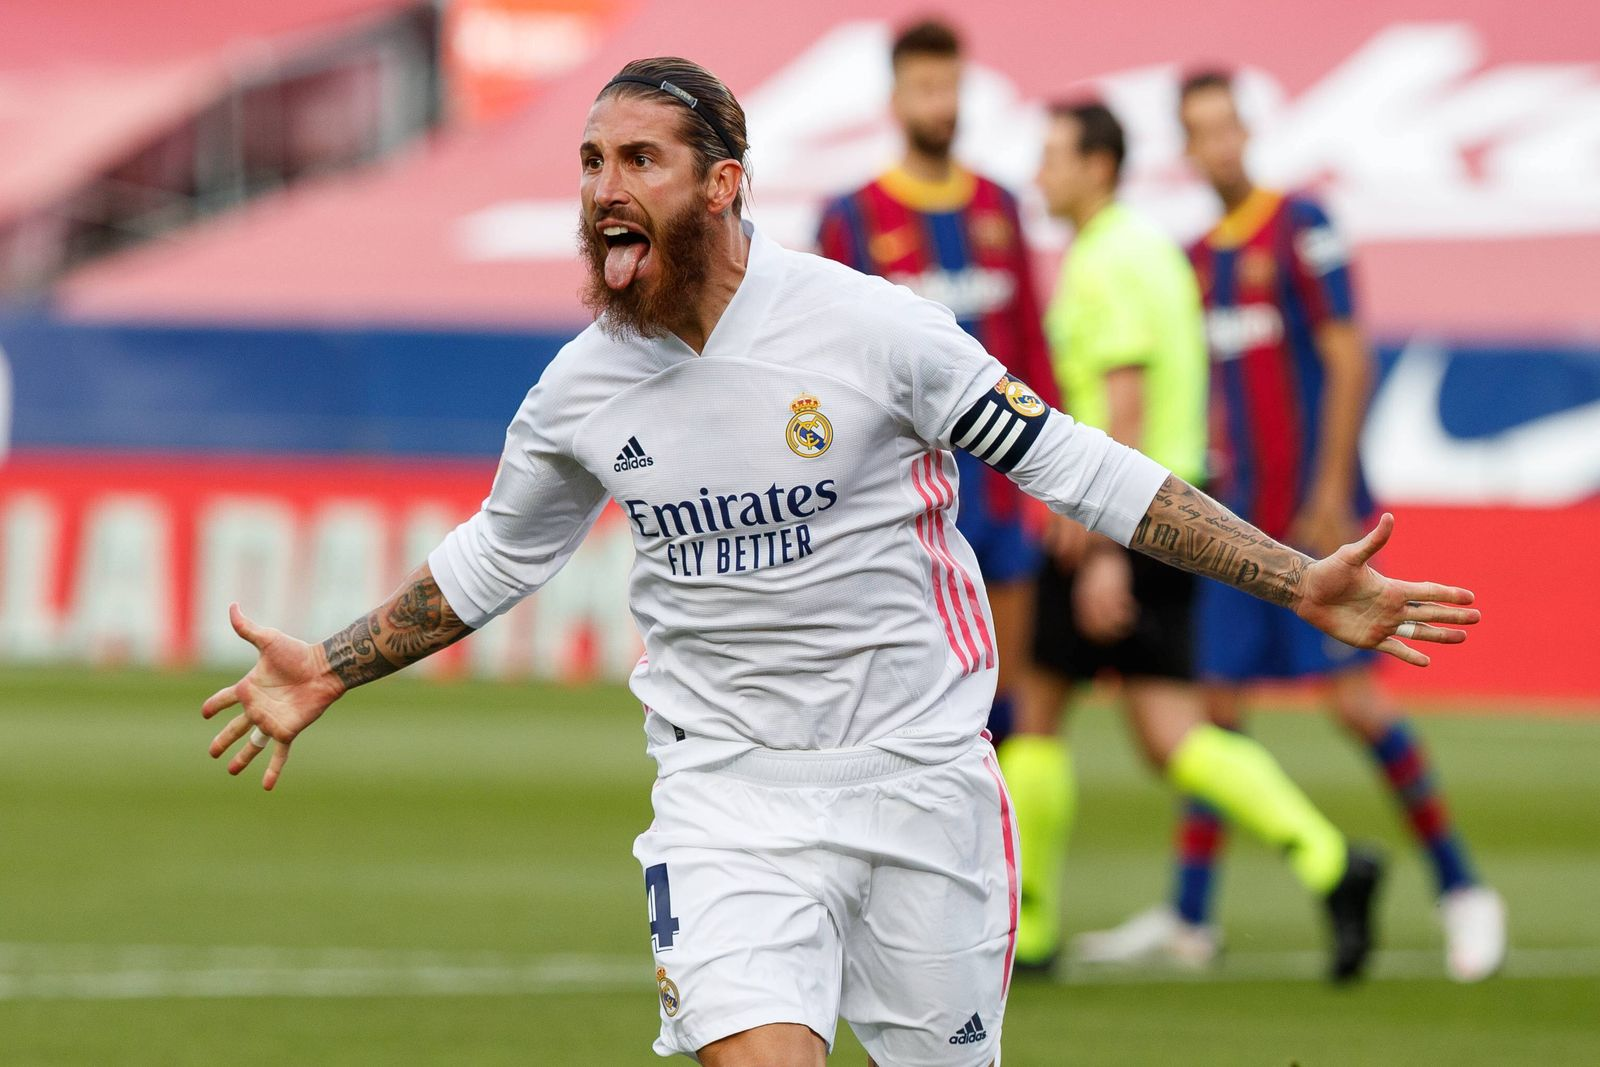 Spanish La Liga soccer match Barcelona vs Real Madrid at Camp Nou Stadium, Barcelona, October 24, 2020 Sergio Ramos cel